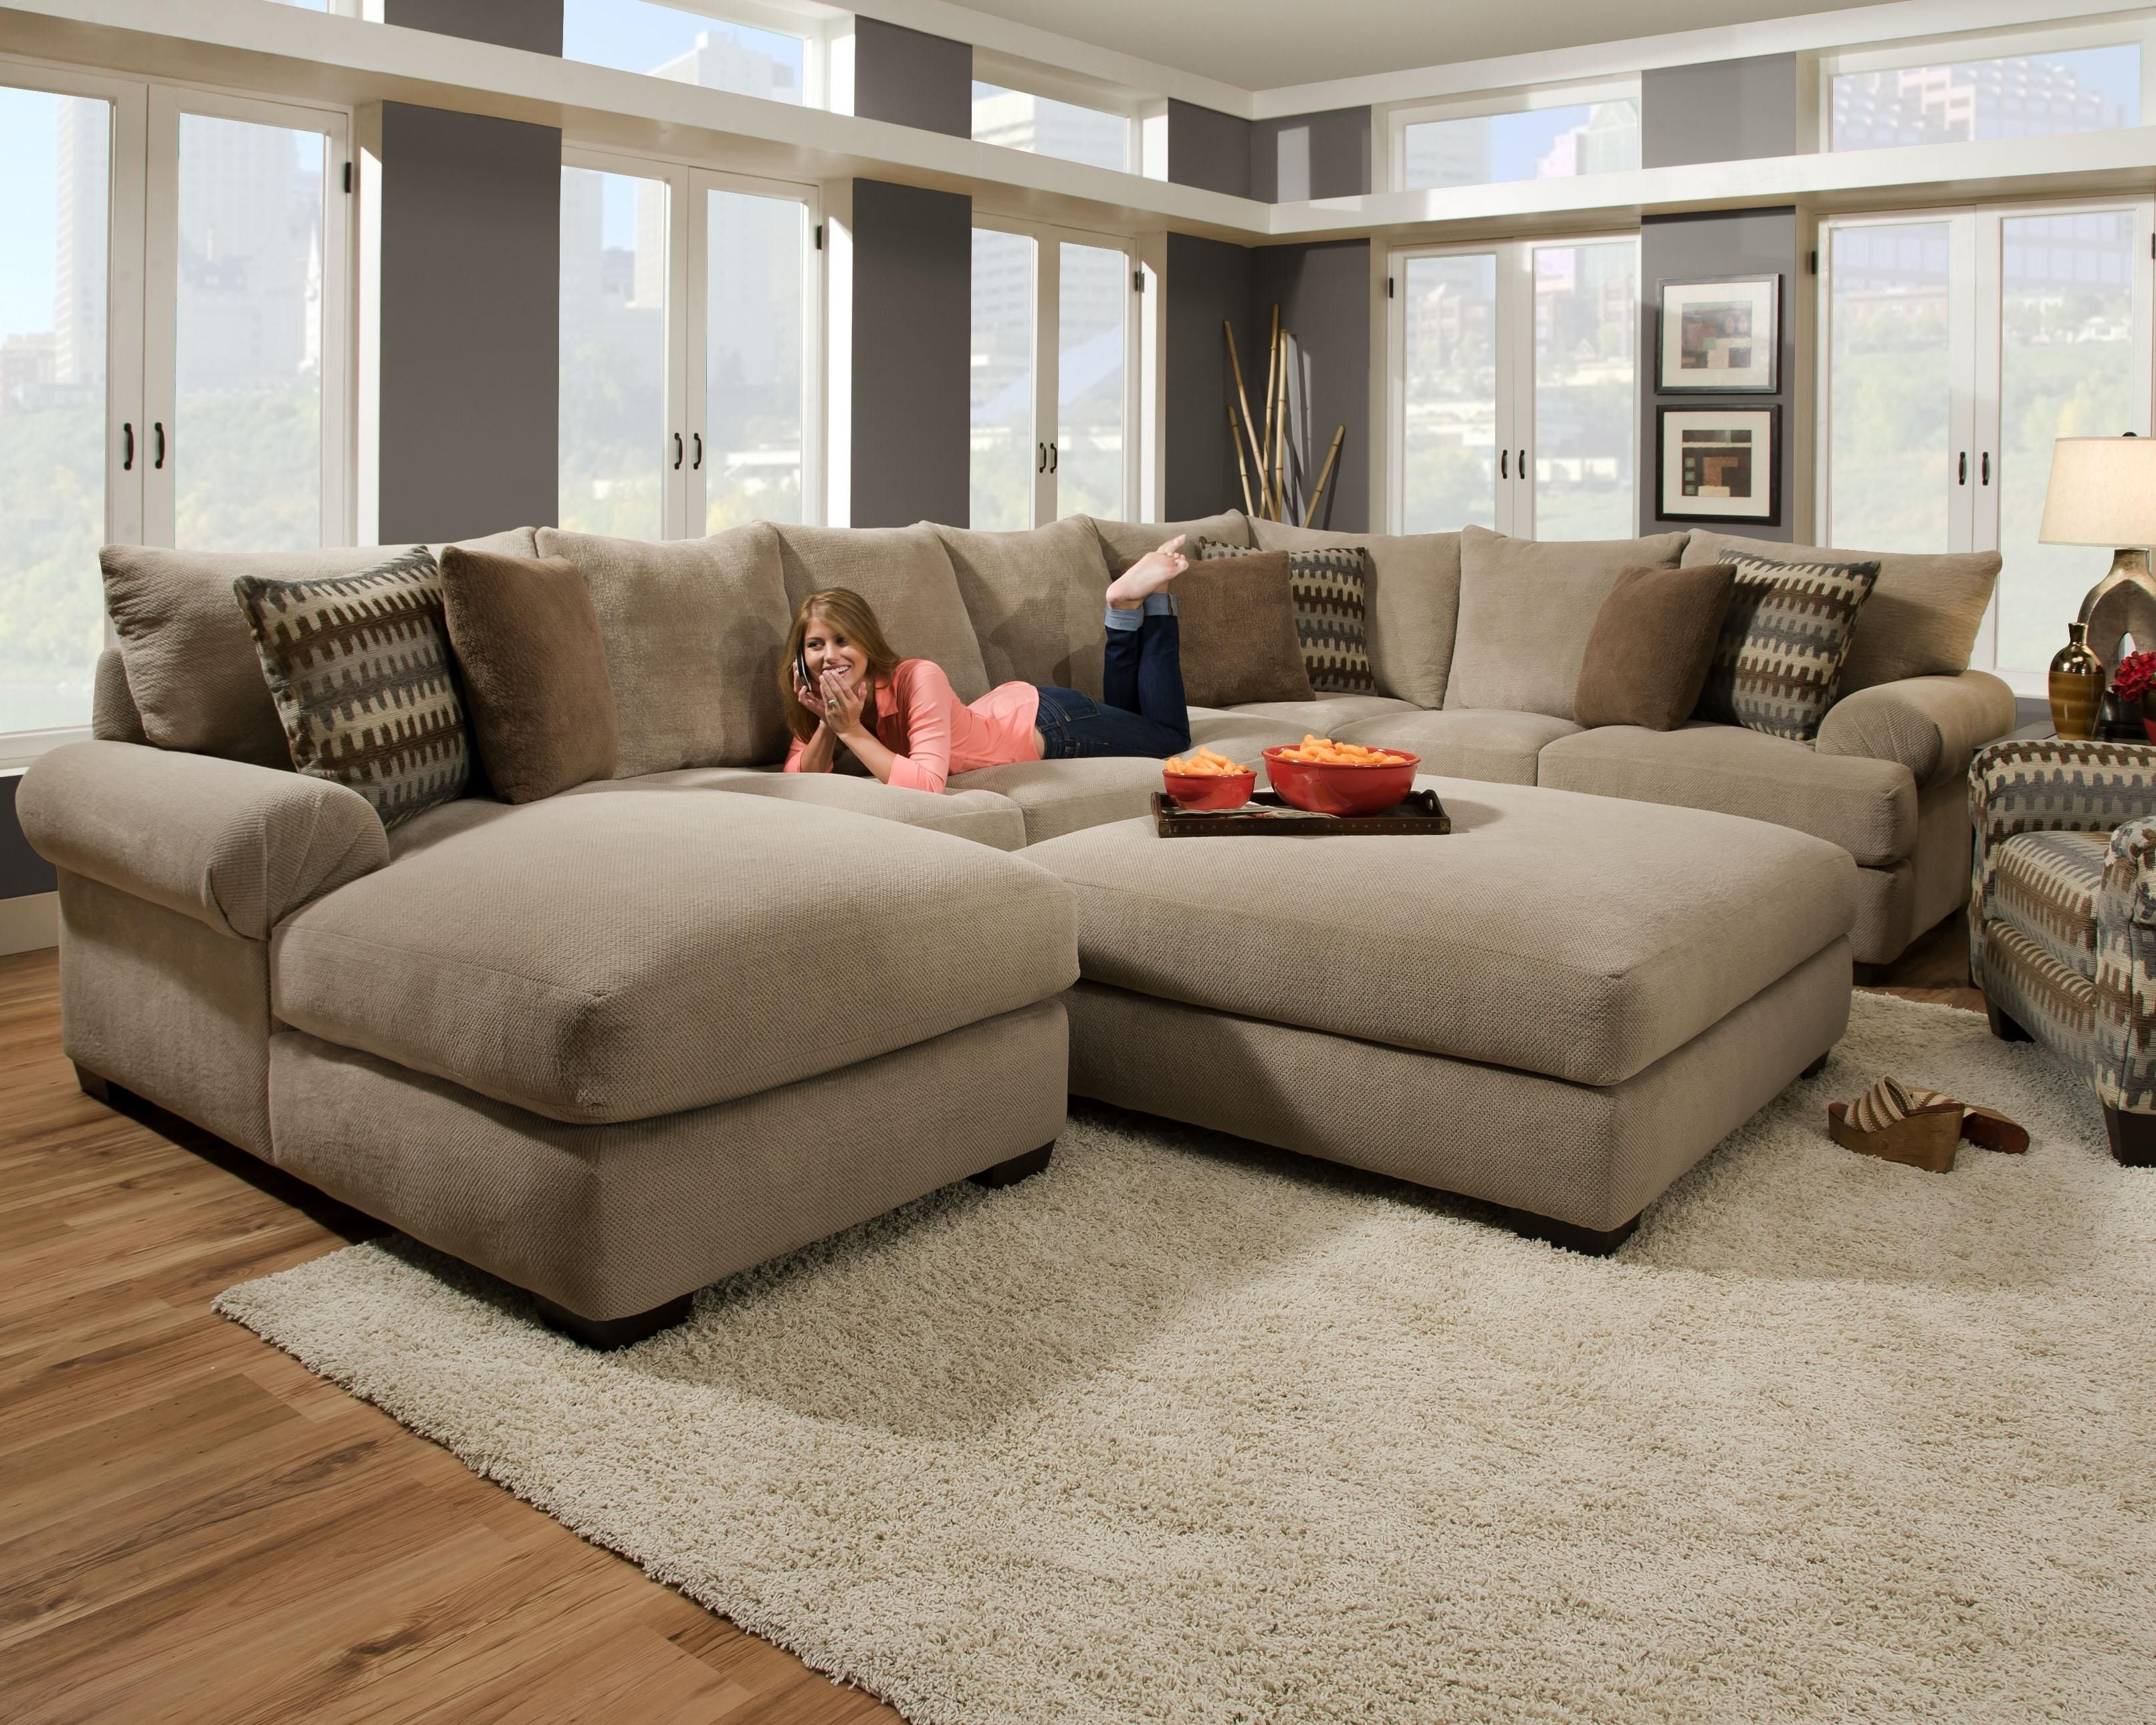 Well Liked Sectional Couches With Large Ottoman Intended For Furniture Design Idea For Living Room And Oversized U Shaped (View 19 of 20)